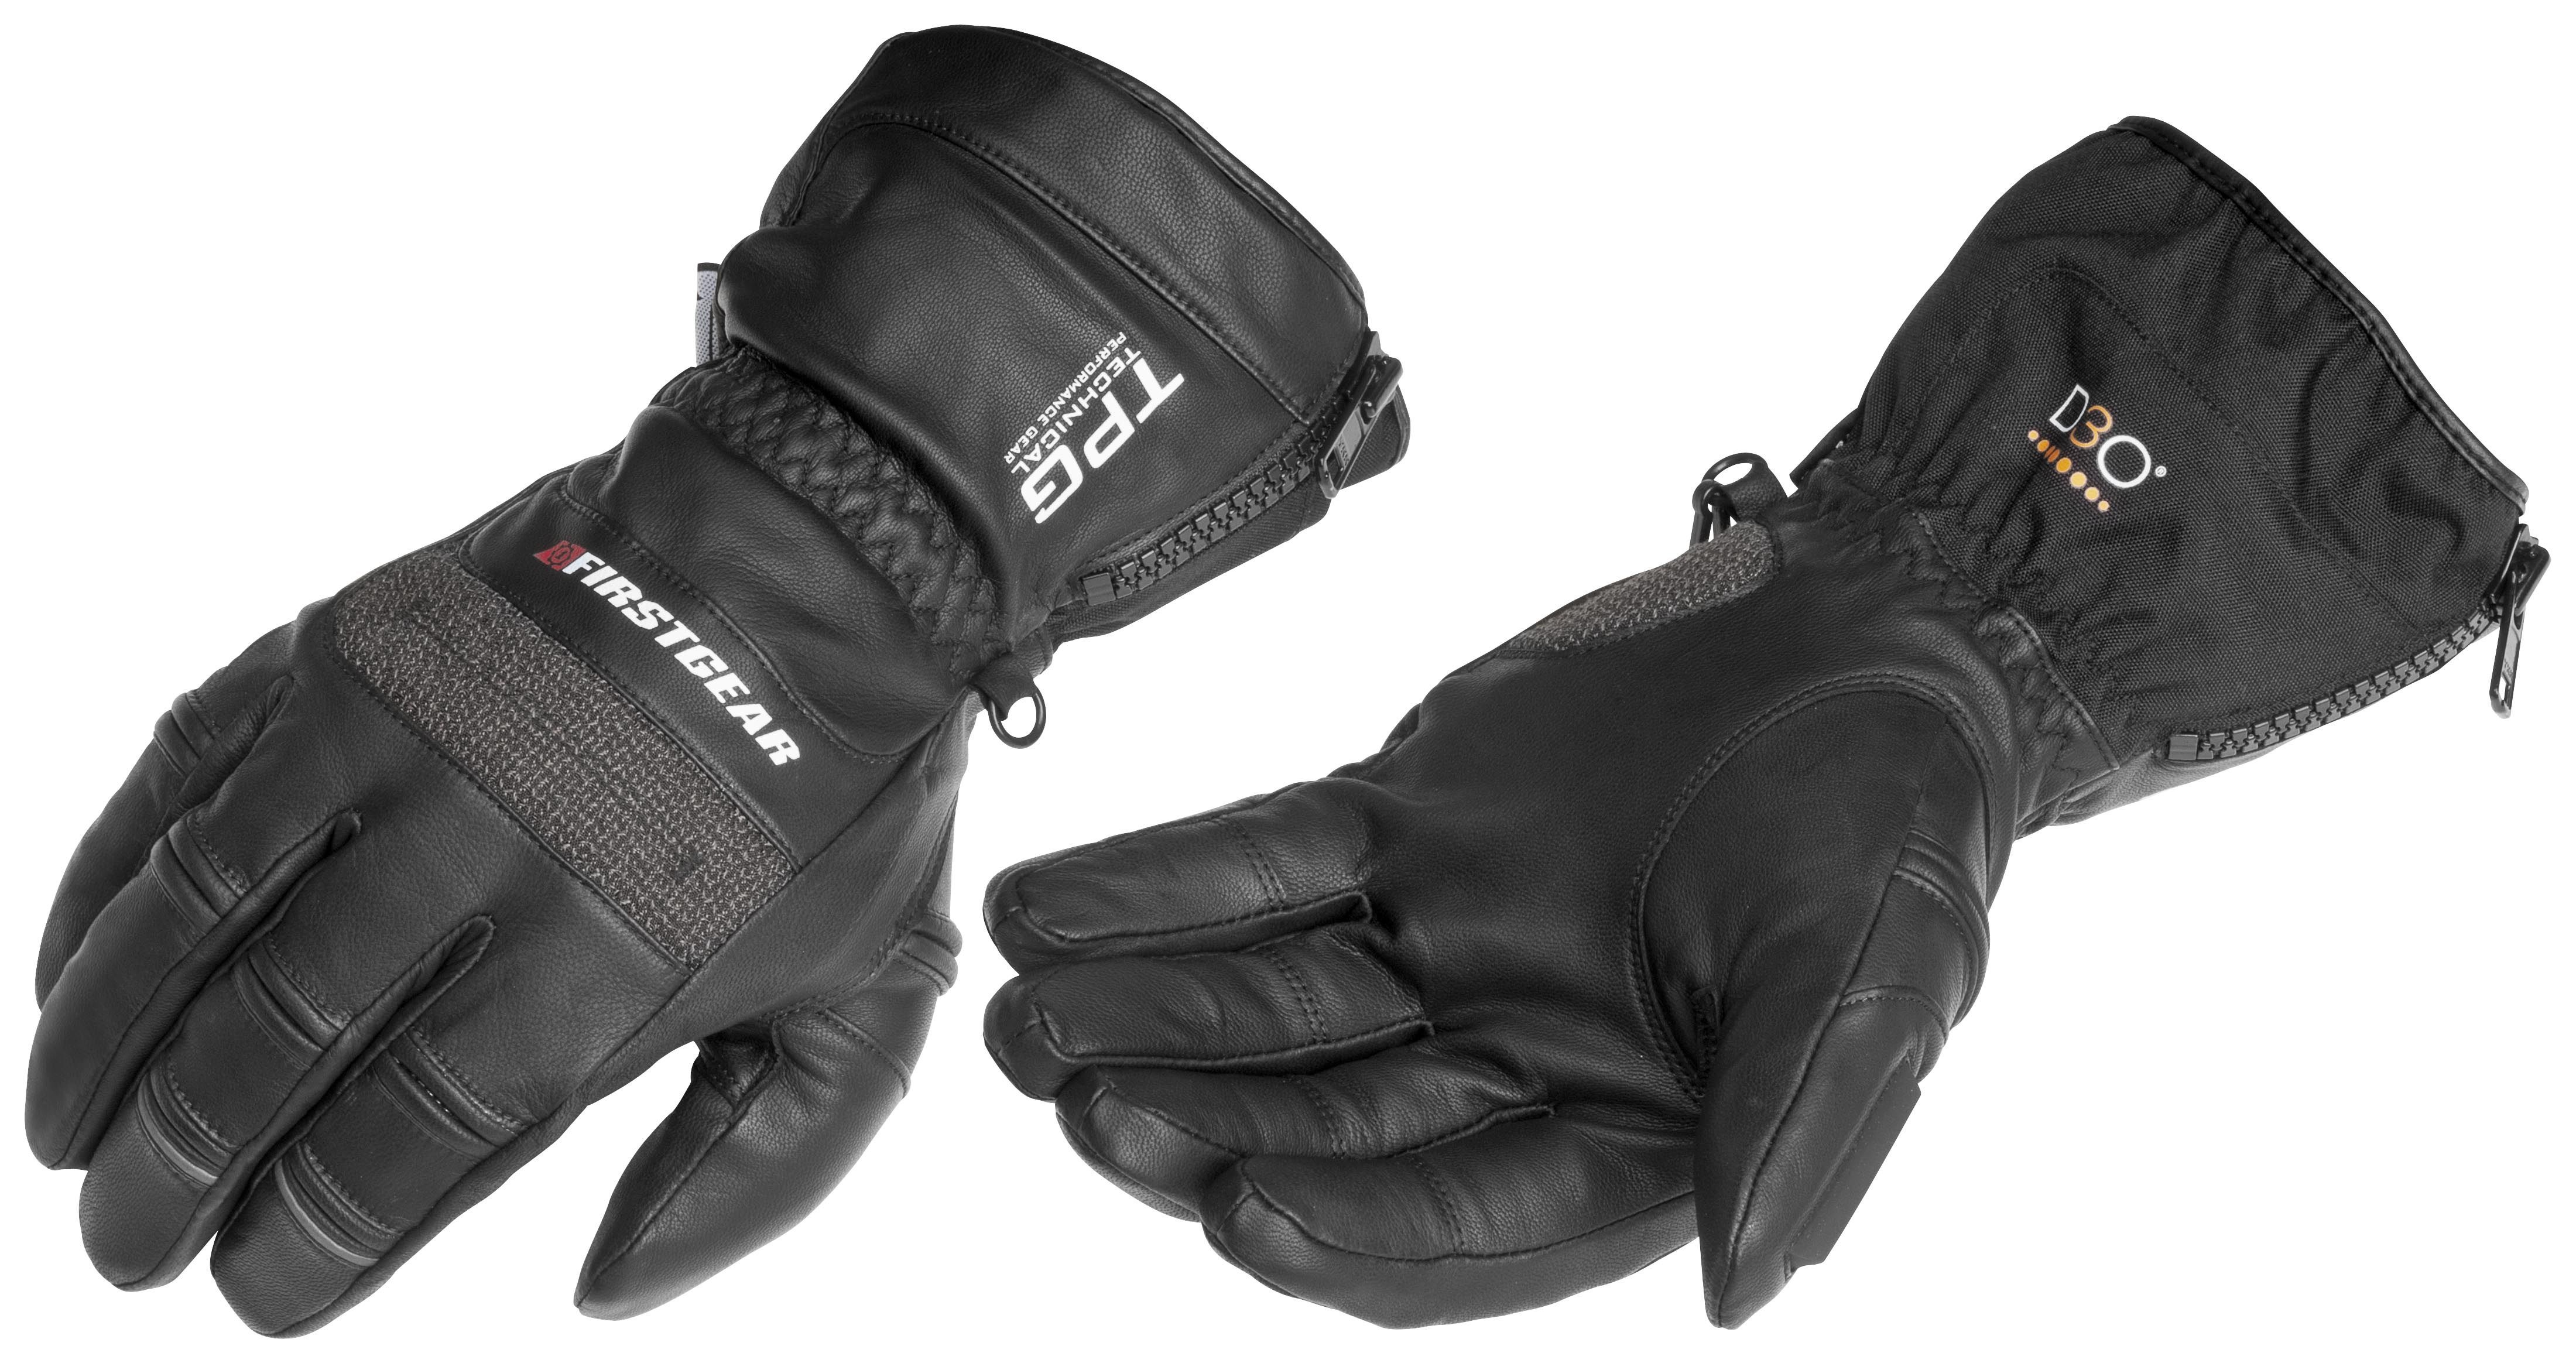 Triumph motorcycle leather gloves - Triumph Motorcycle Leather Gloves 21